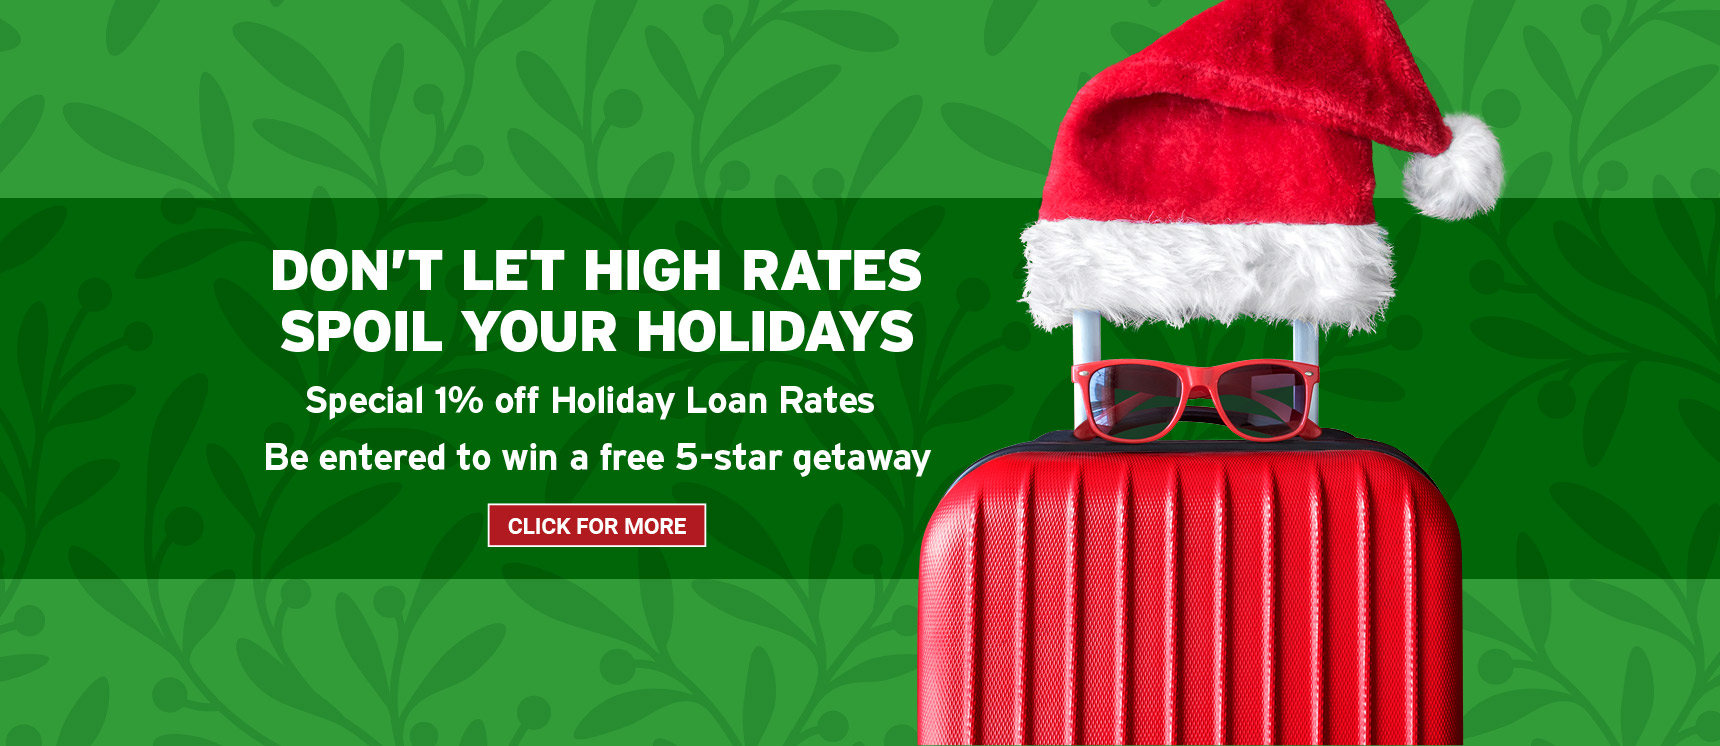 Holiday loan and 5-start getaway promotion with suitcase, santa hat and sunglasses